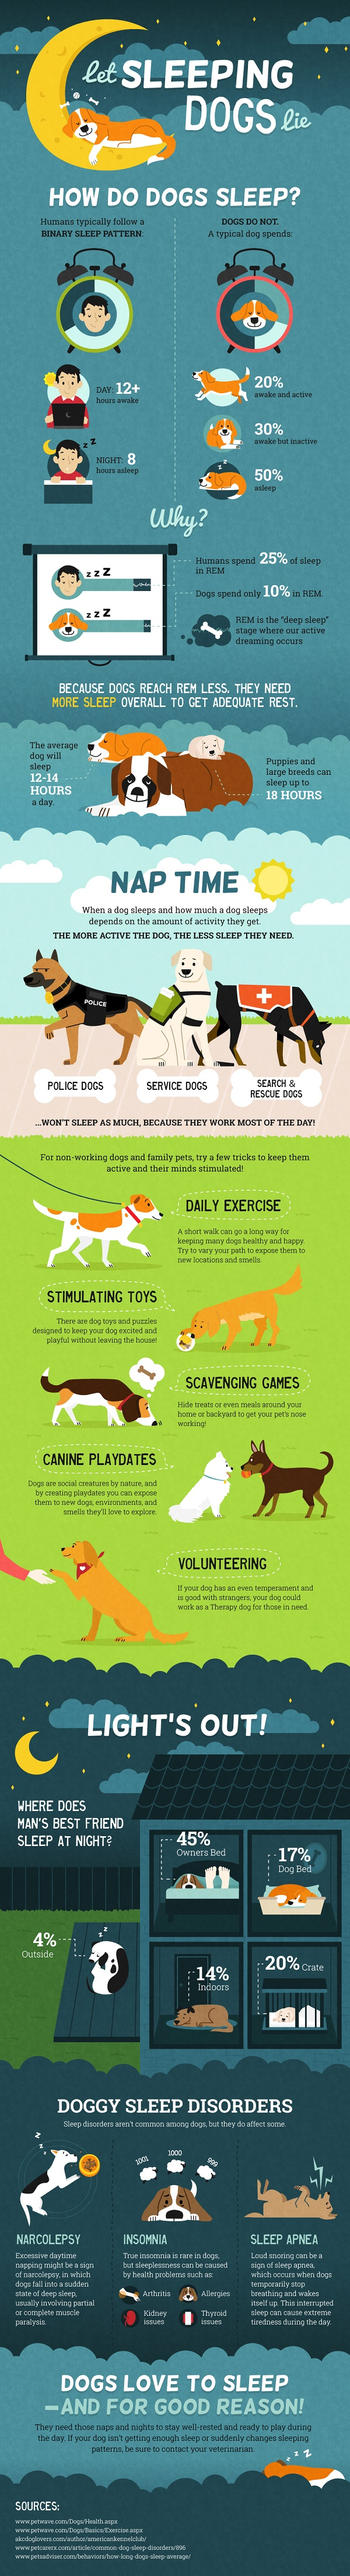 Why Dogs Need More Sleep than Humans - Infographic